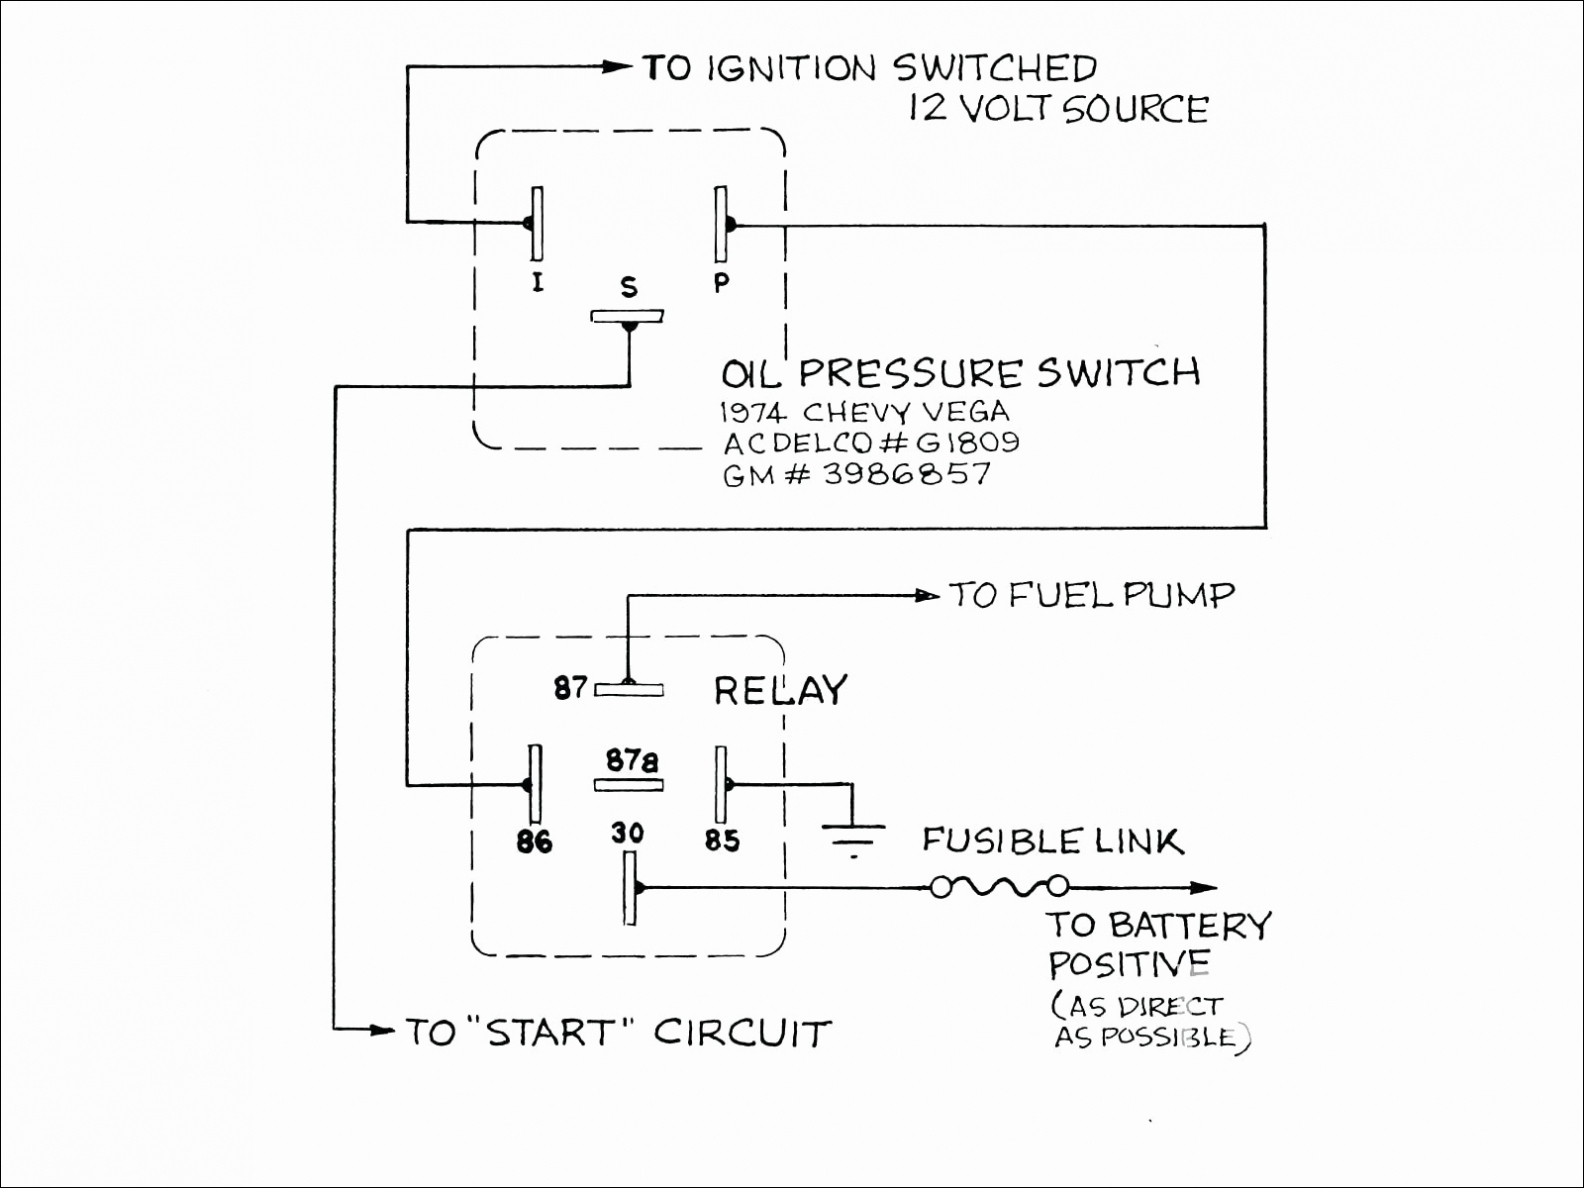 1960 Chevy Ignition Wiring Diagram | Wiring Library - Universal Ignition Switch Wiring Diagram